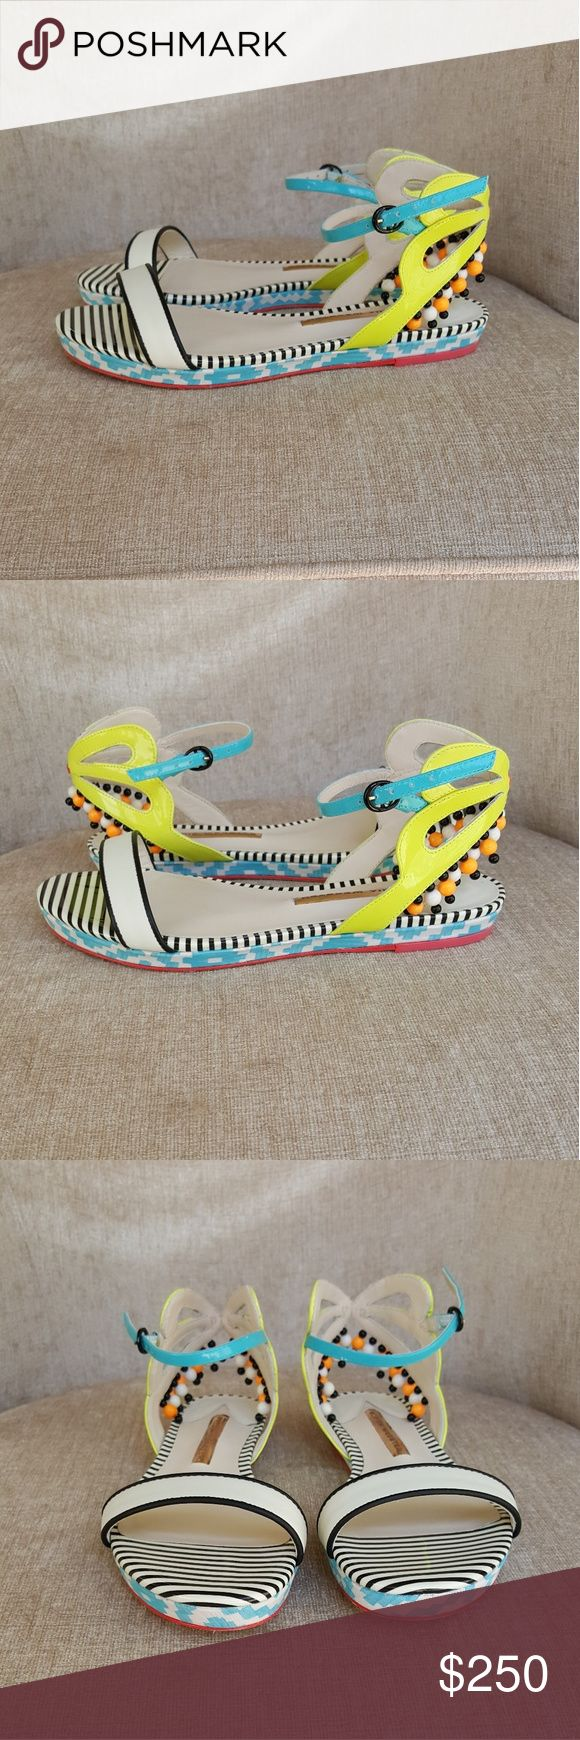 NIB Sophia Webster Luca Aztec Flats US 6.5 / Euro.36.5.  New with box only.  No dustbags Sophia Webster Shoes Flats & Loafers